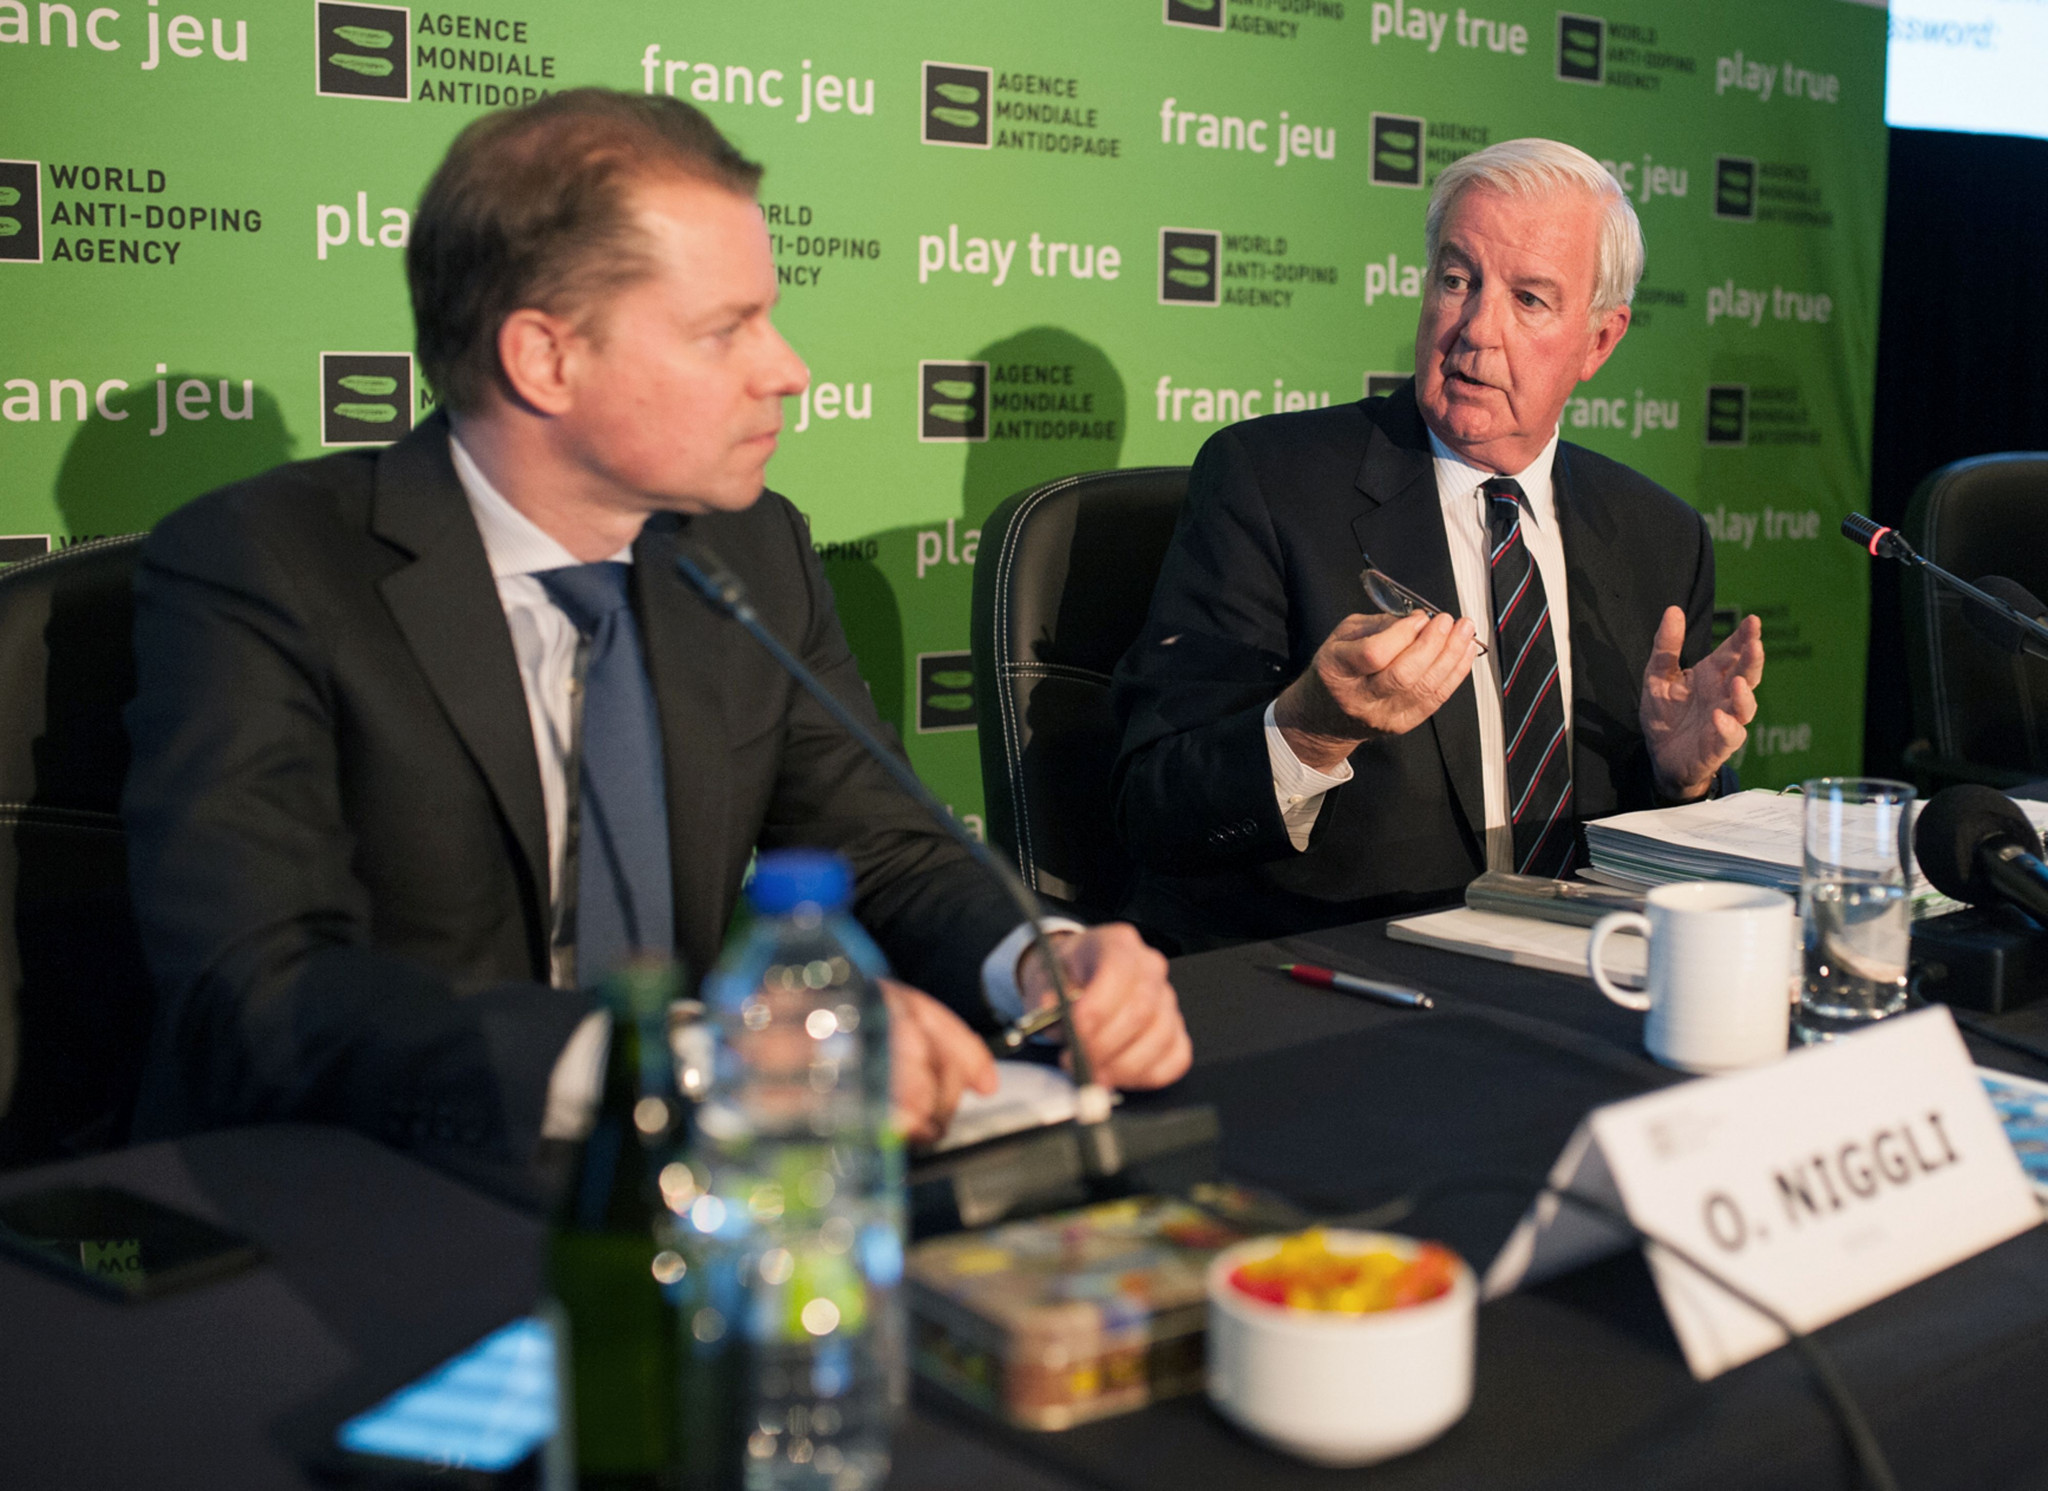 """WADA leaders admit organisation """"navigating challenging times"""" but claim several achievements made in 2018"""